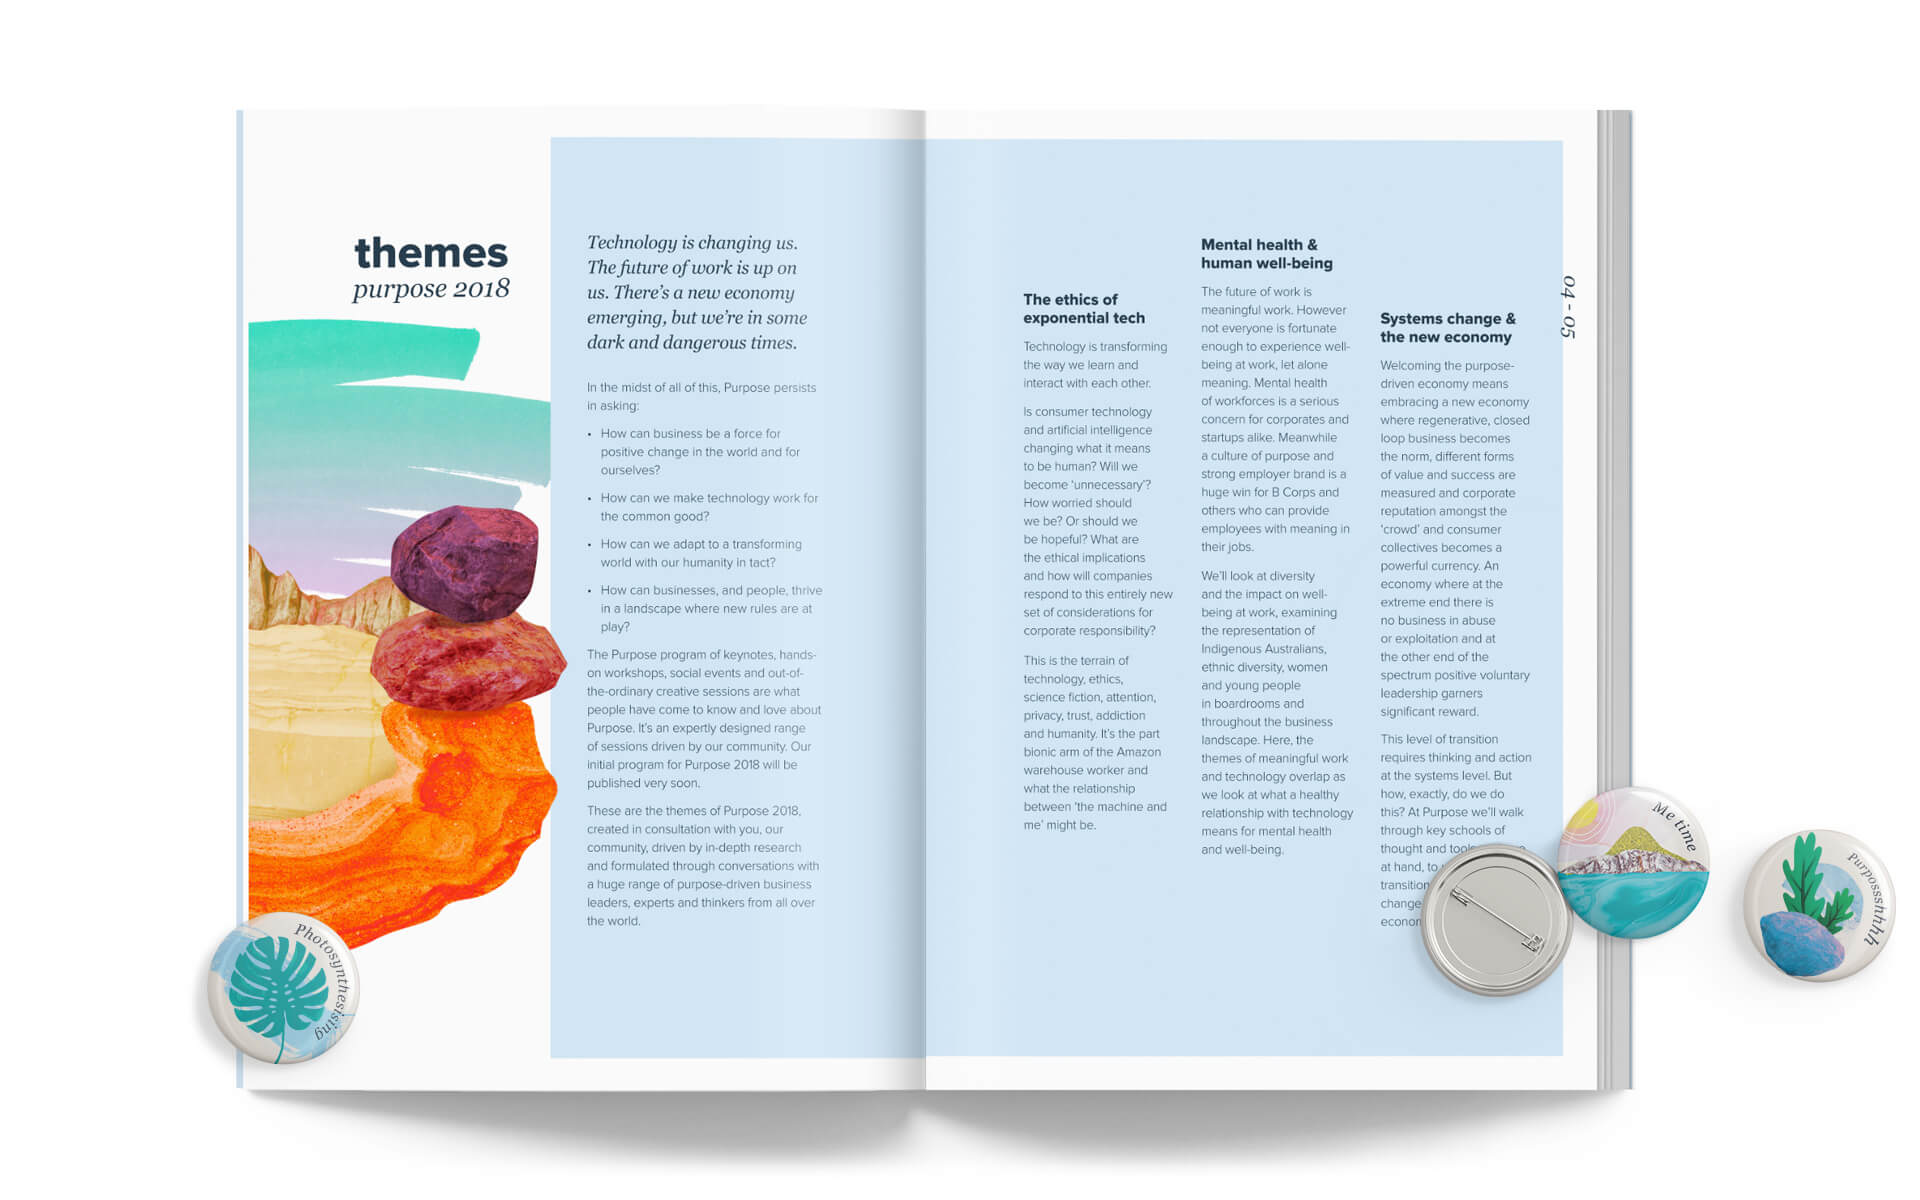 Purpose 2018 program themes pages design and buttons